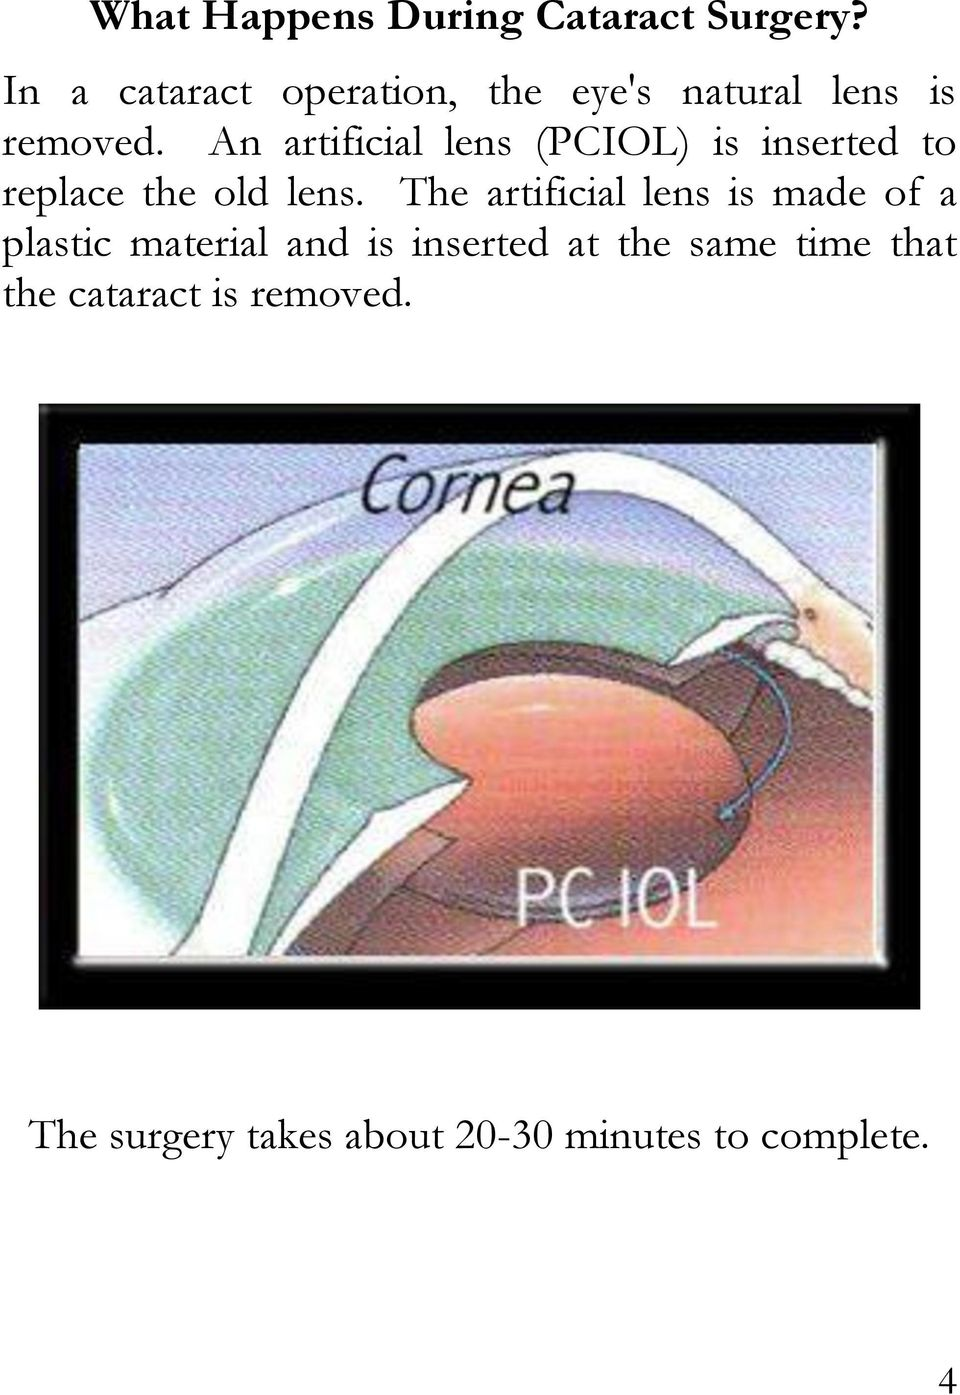 An artificial lens (PCIOL) is inserted to replace the old lens.